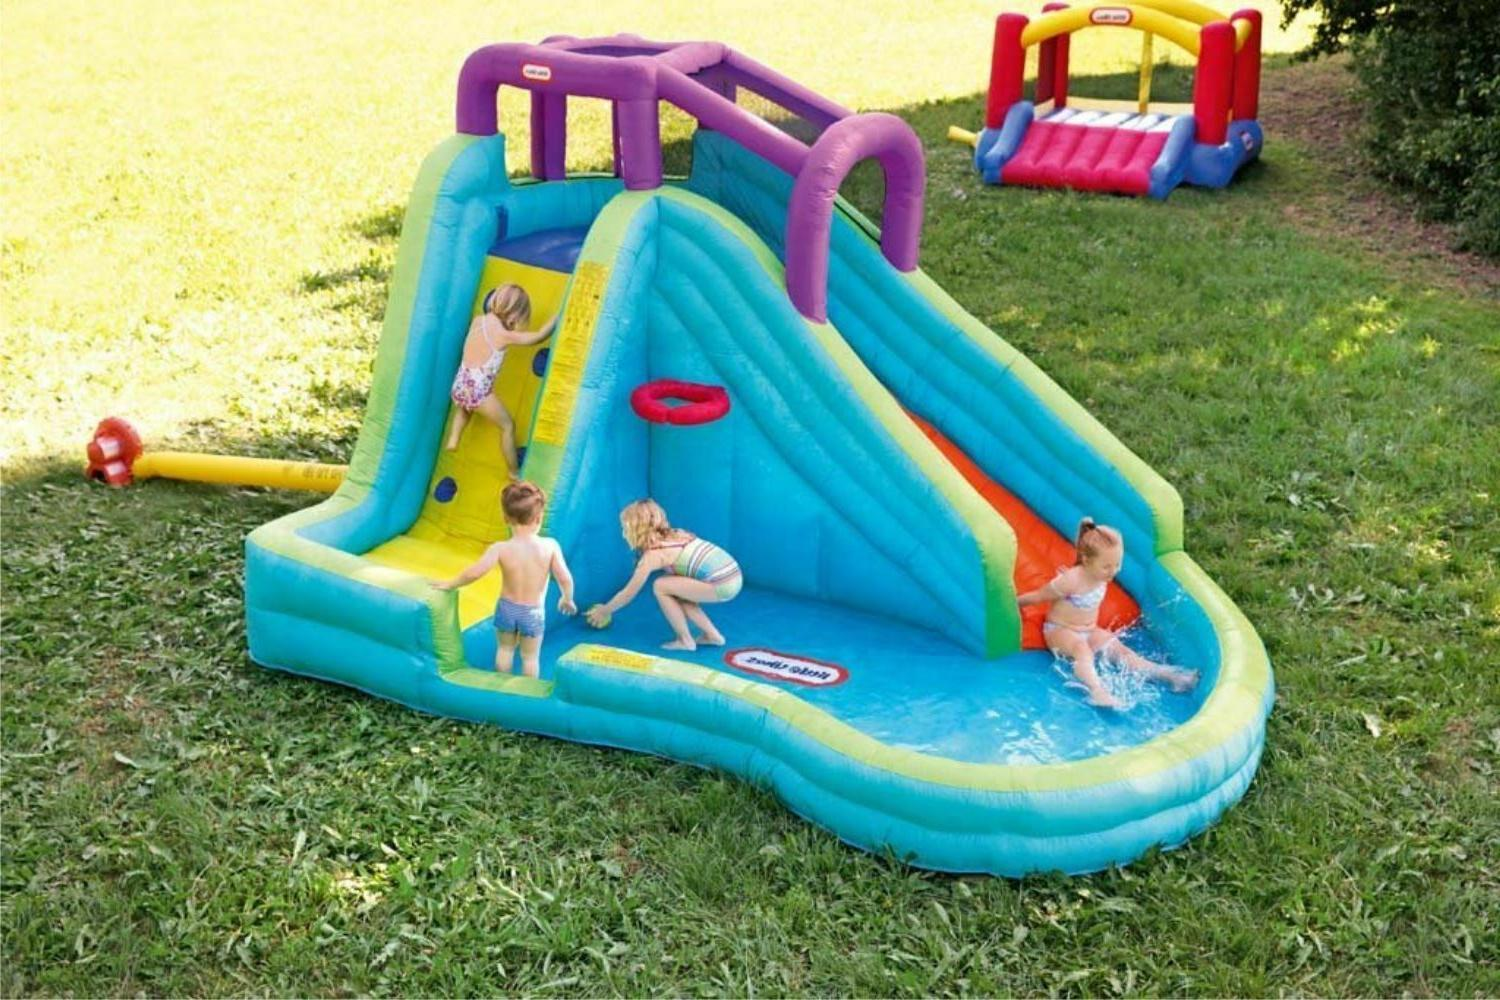 Inflatable Water Park Kids Slide Big Play Center Splash Swim